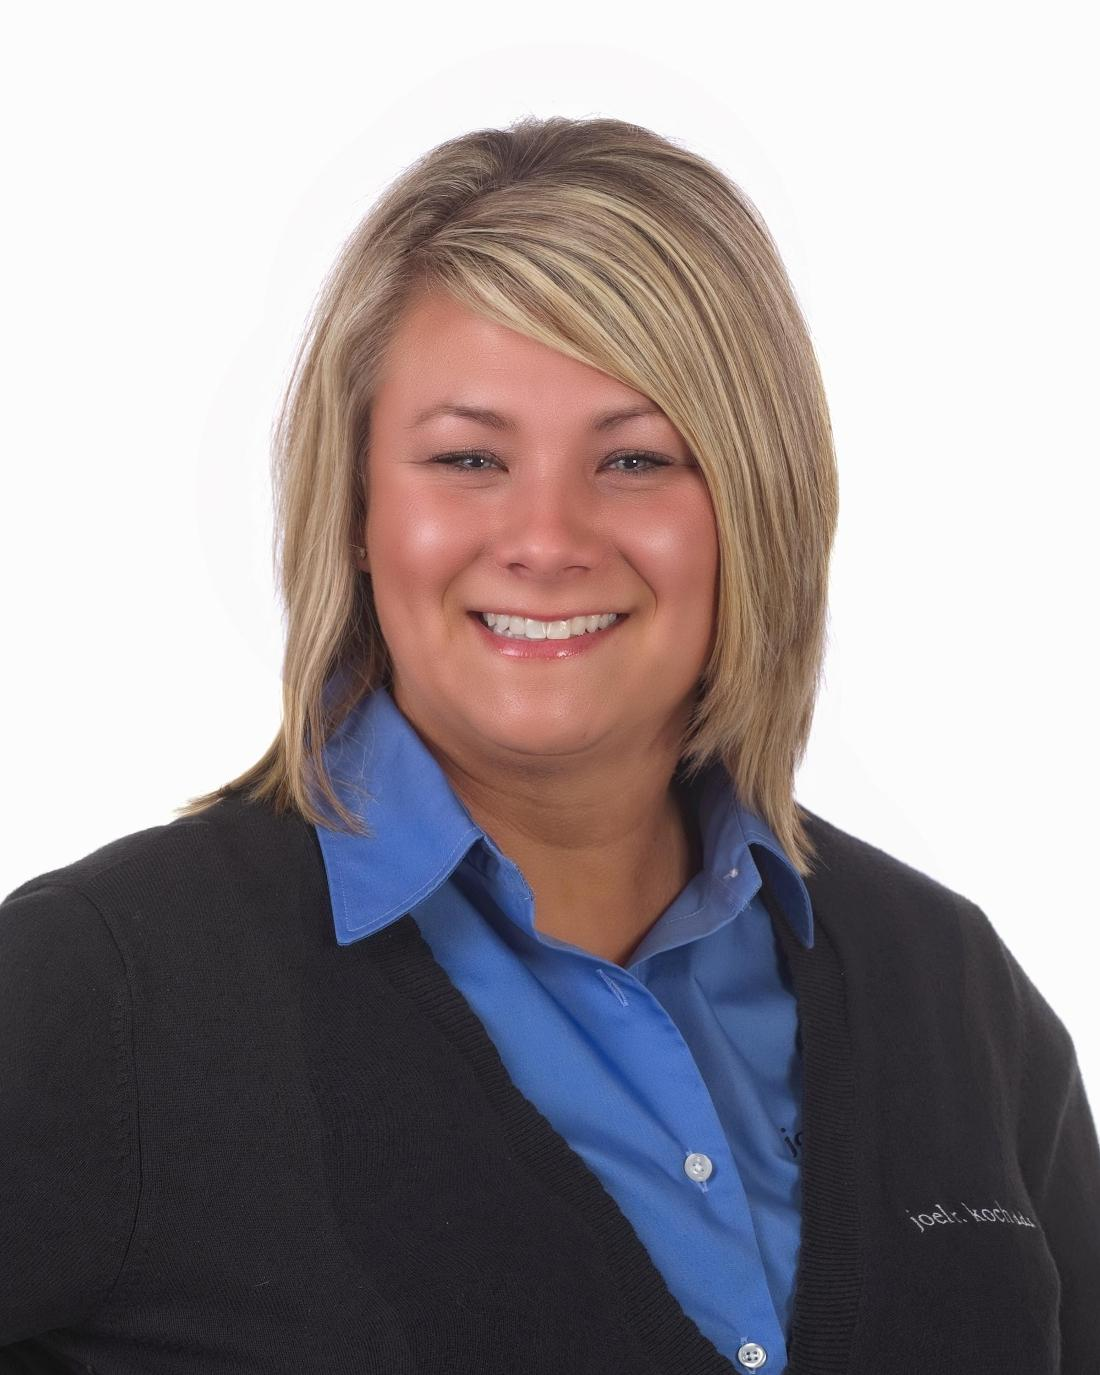 Jamie Headshot | Friendly Dental Team in West Chester OH